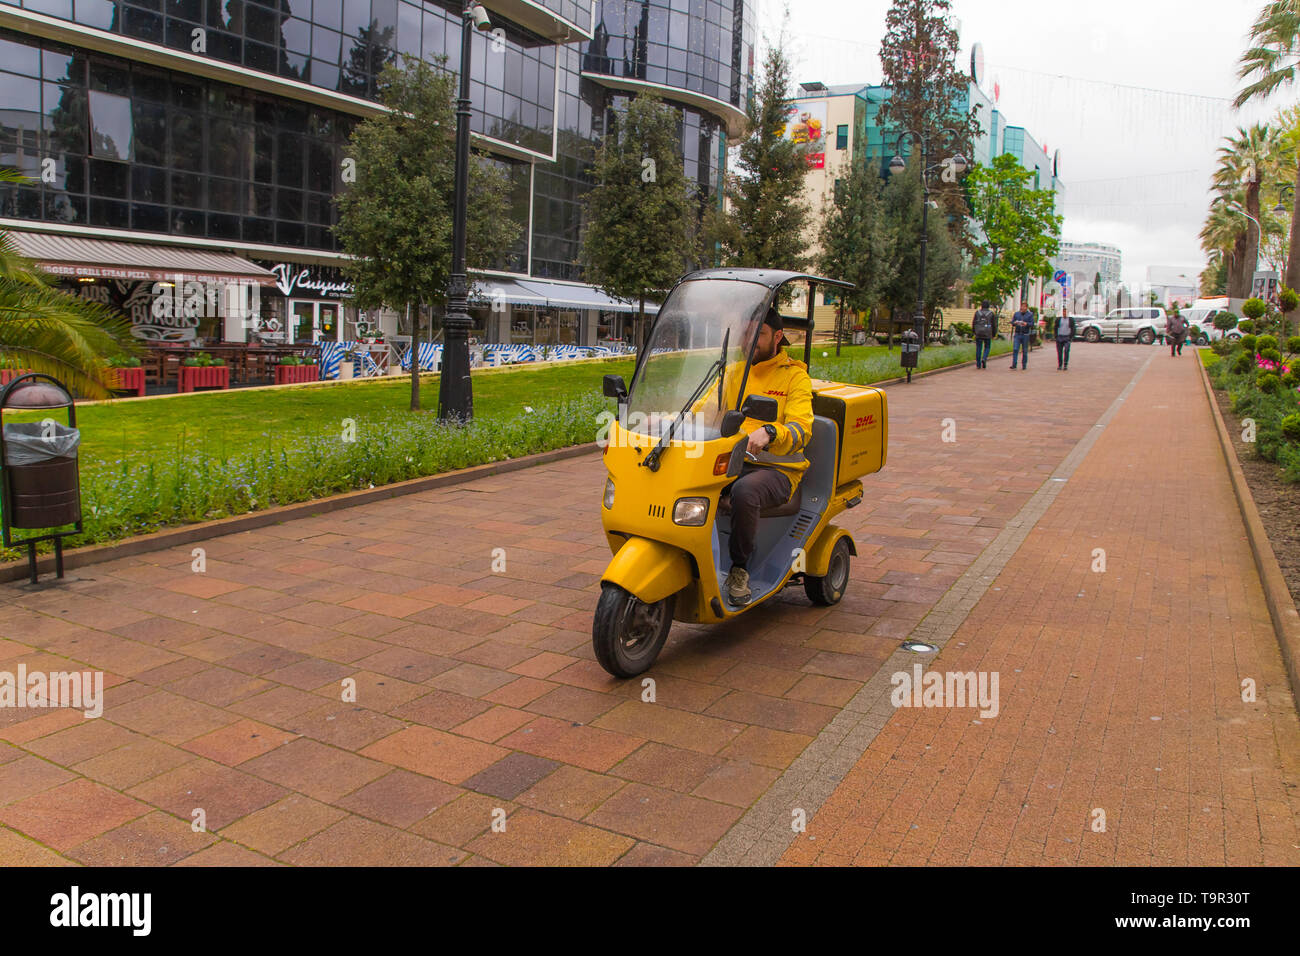 SOCHI,RUSSIA, 18 APRIL 2019 - delivery of consignments on motorbike, motorcyclist rides with delivery in the large yellow box on street - Stock Image